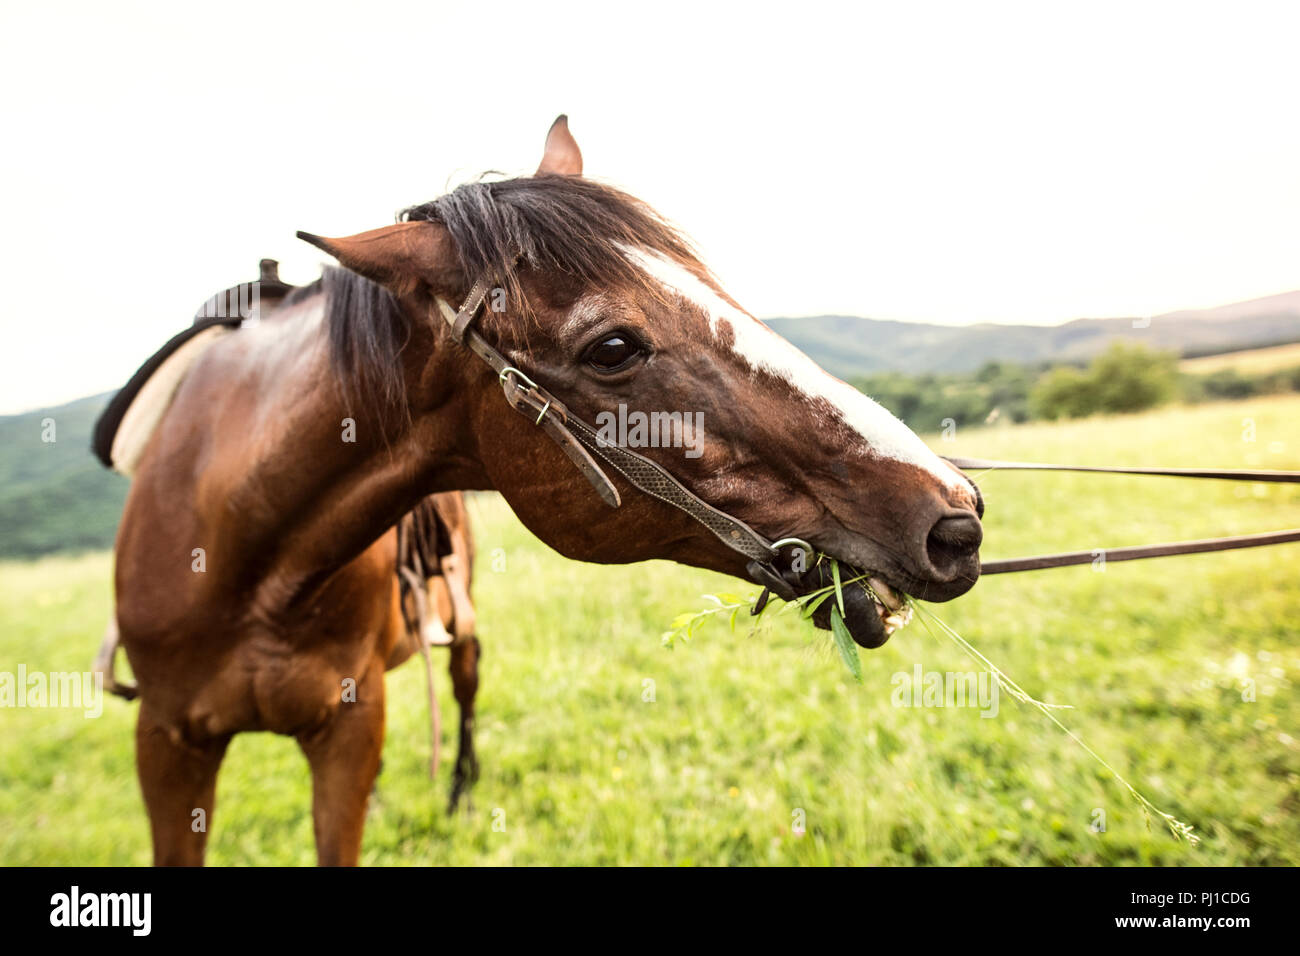 A brown riding horse eating grass, being held by somebody. - Stock Image